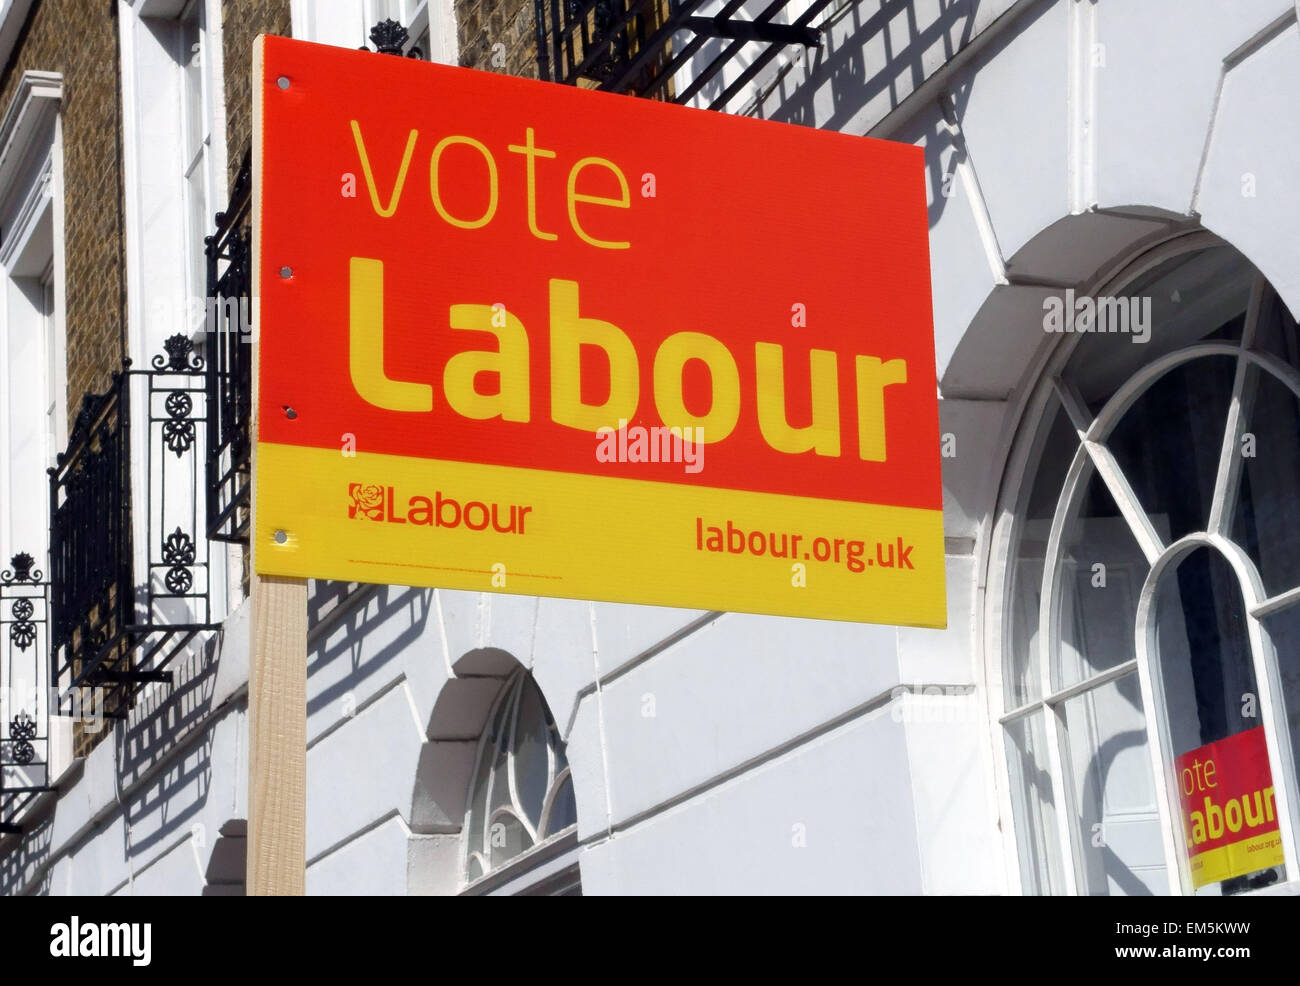 Labour Party sign outside Georgian terraced house in Islington square, London Stock Photo